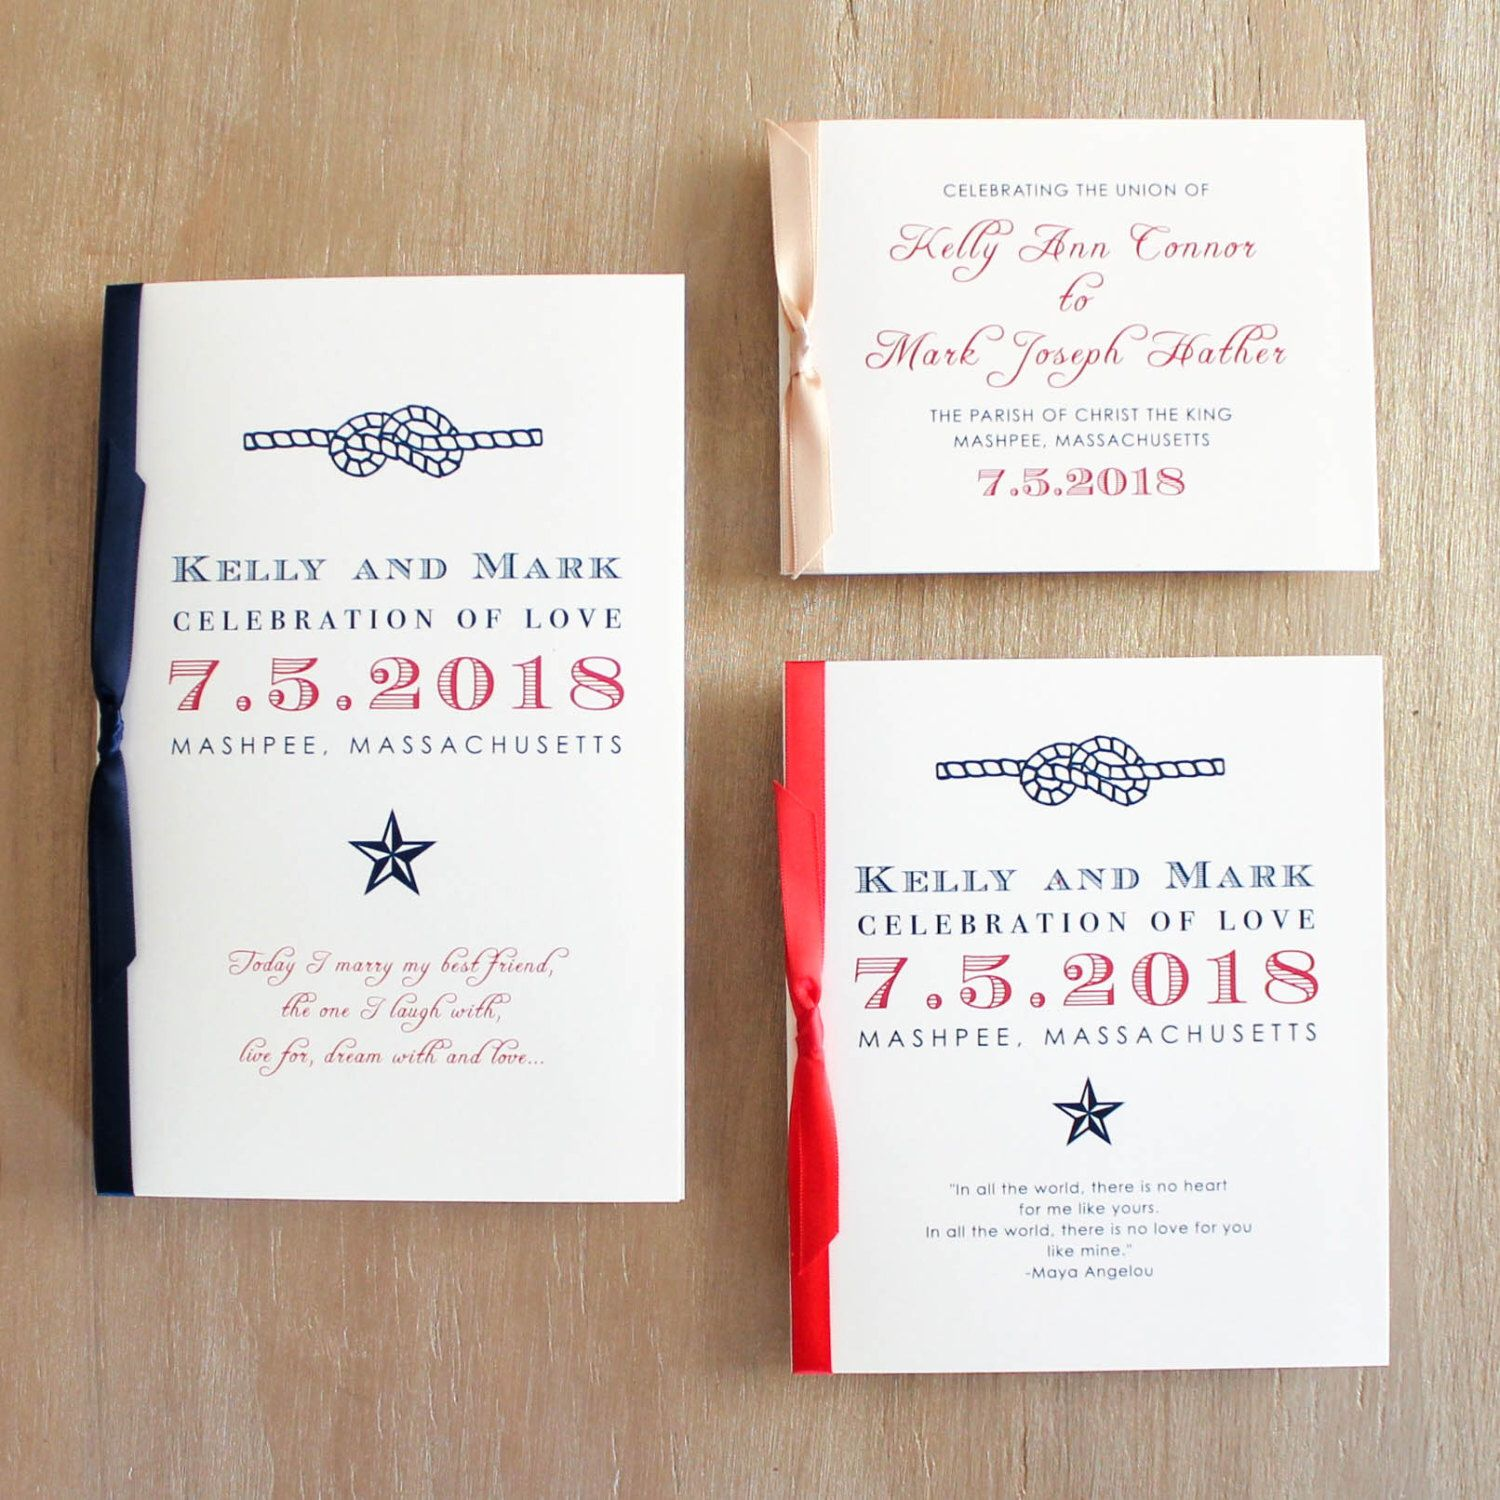 Patriotic Preppy Wedding Program With Red White Blue Americana Or Booklet Cover W Blank Interior Pages Customizable Colors Wording Fonts